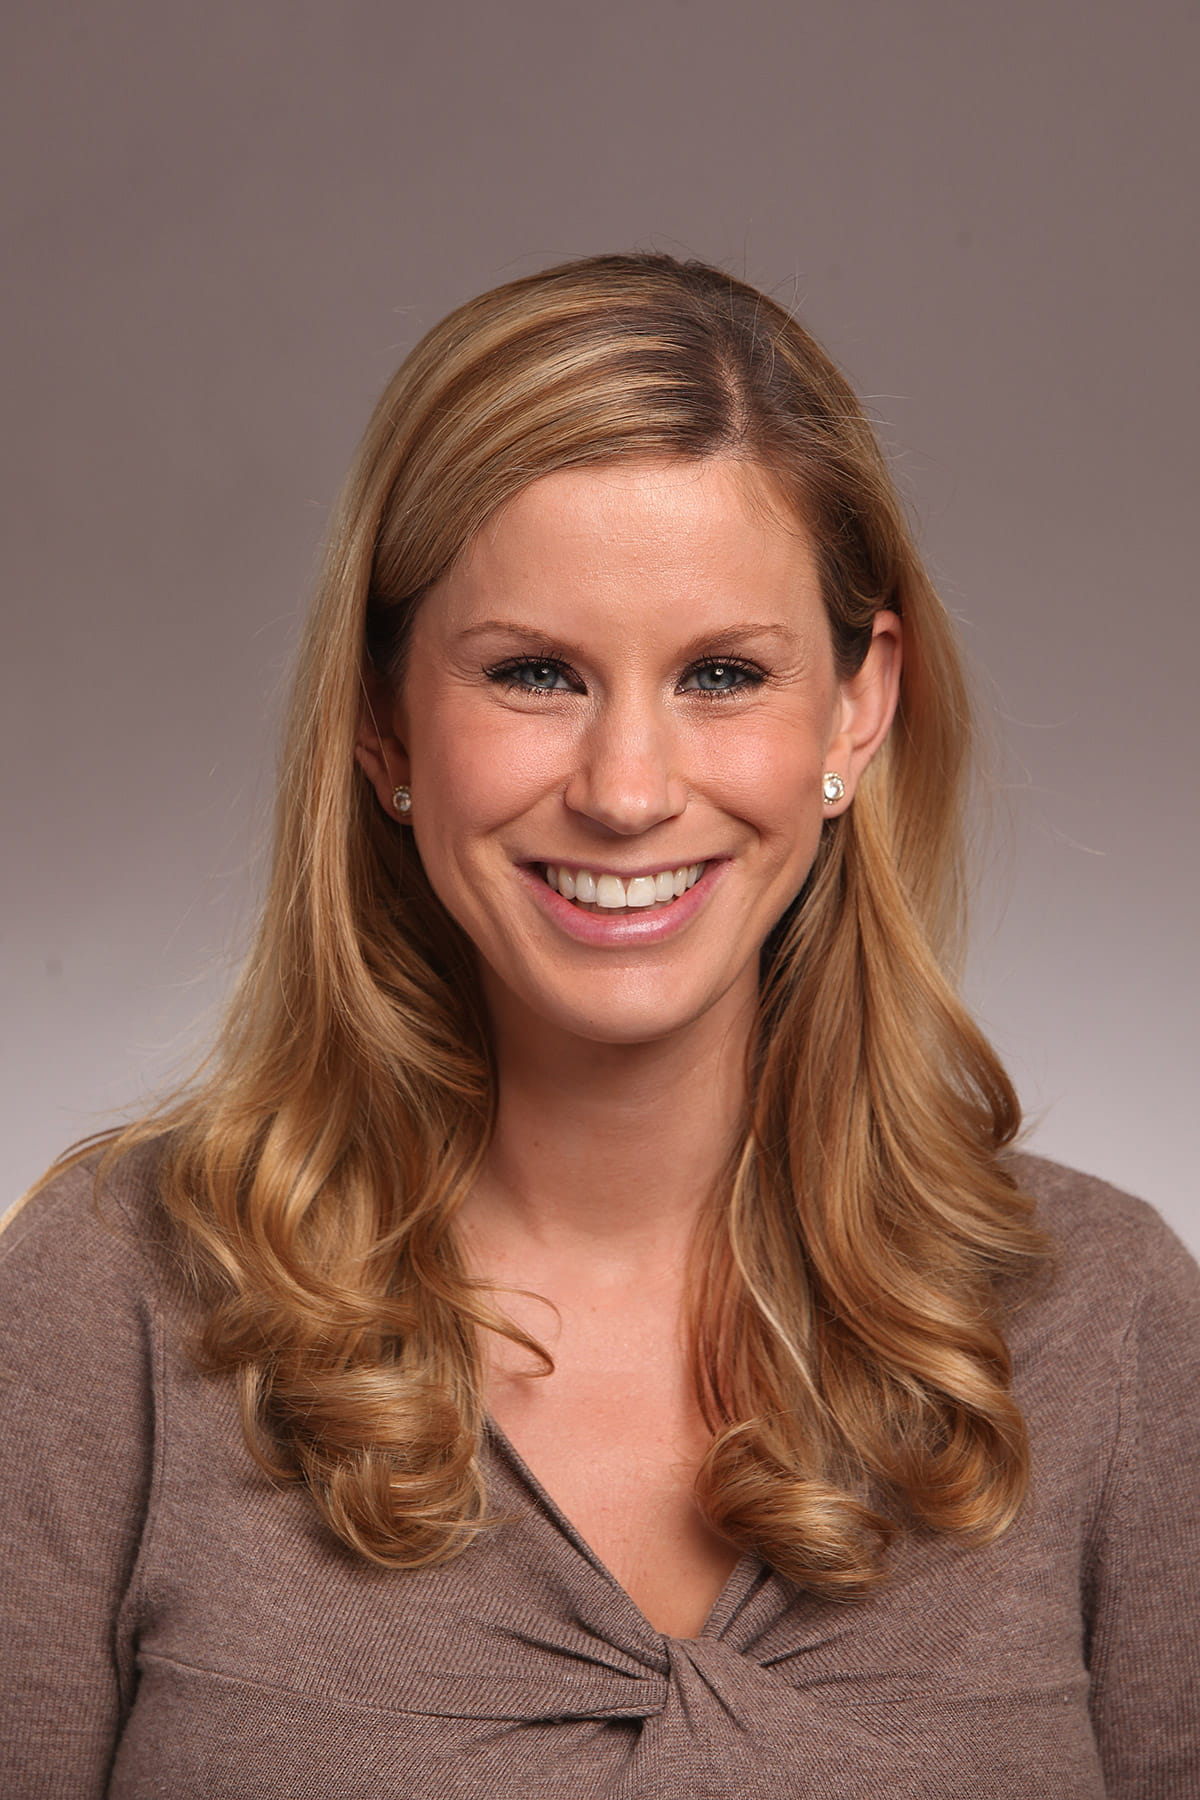 A photo of Heidi Adkins.